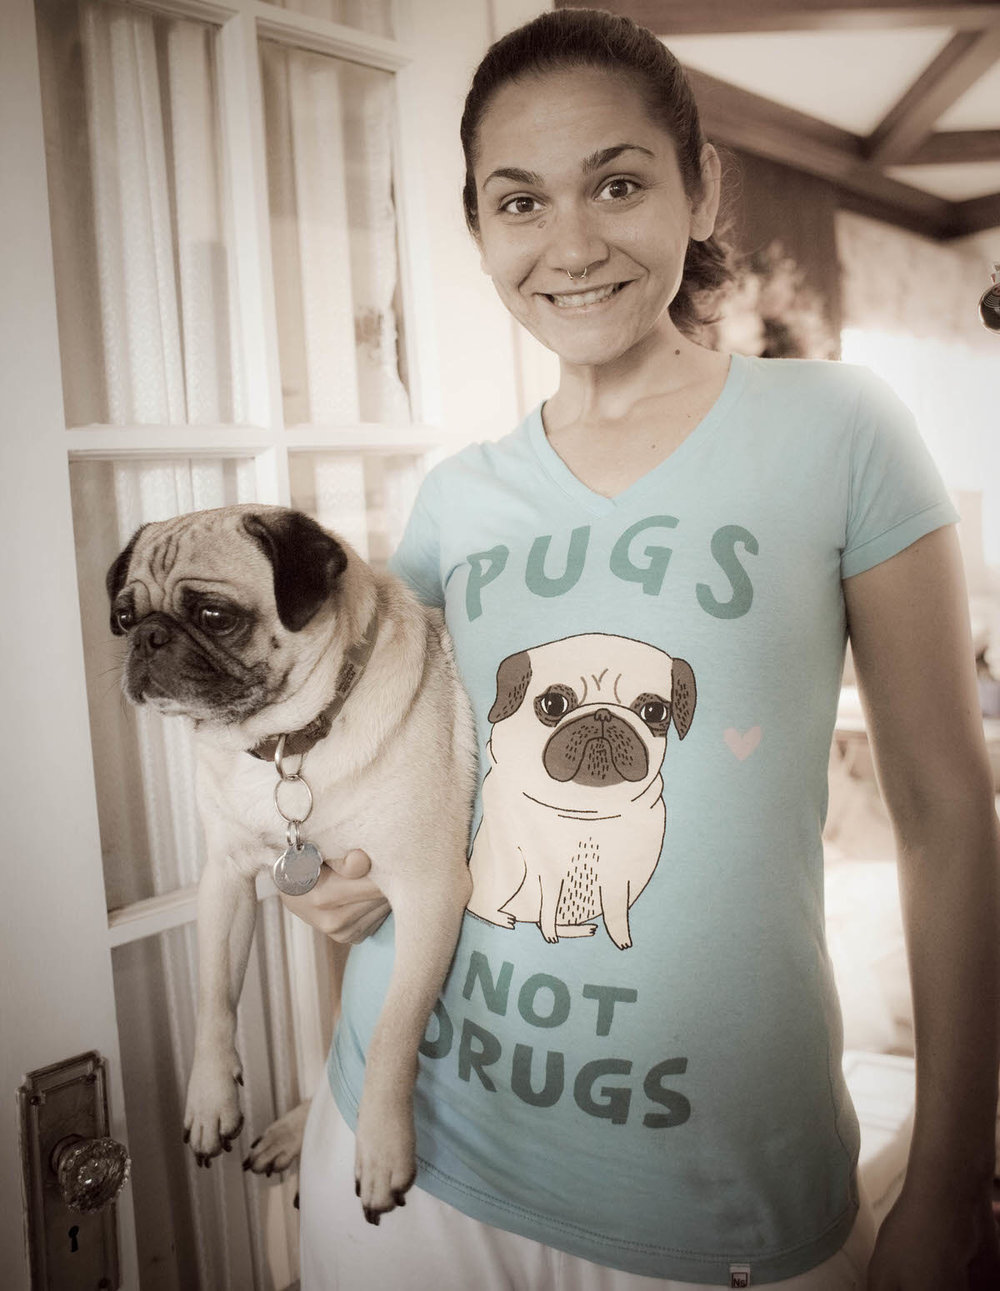 pugs_not_drugs.jpg